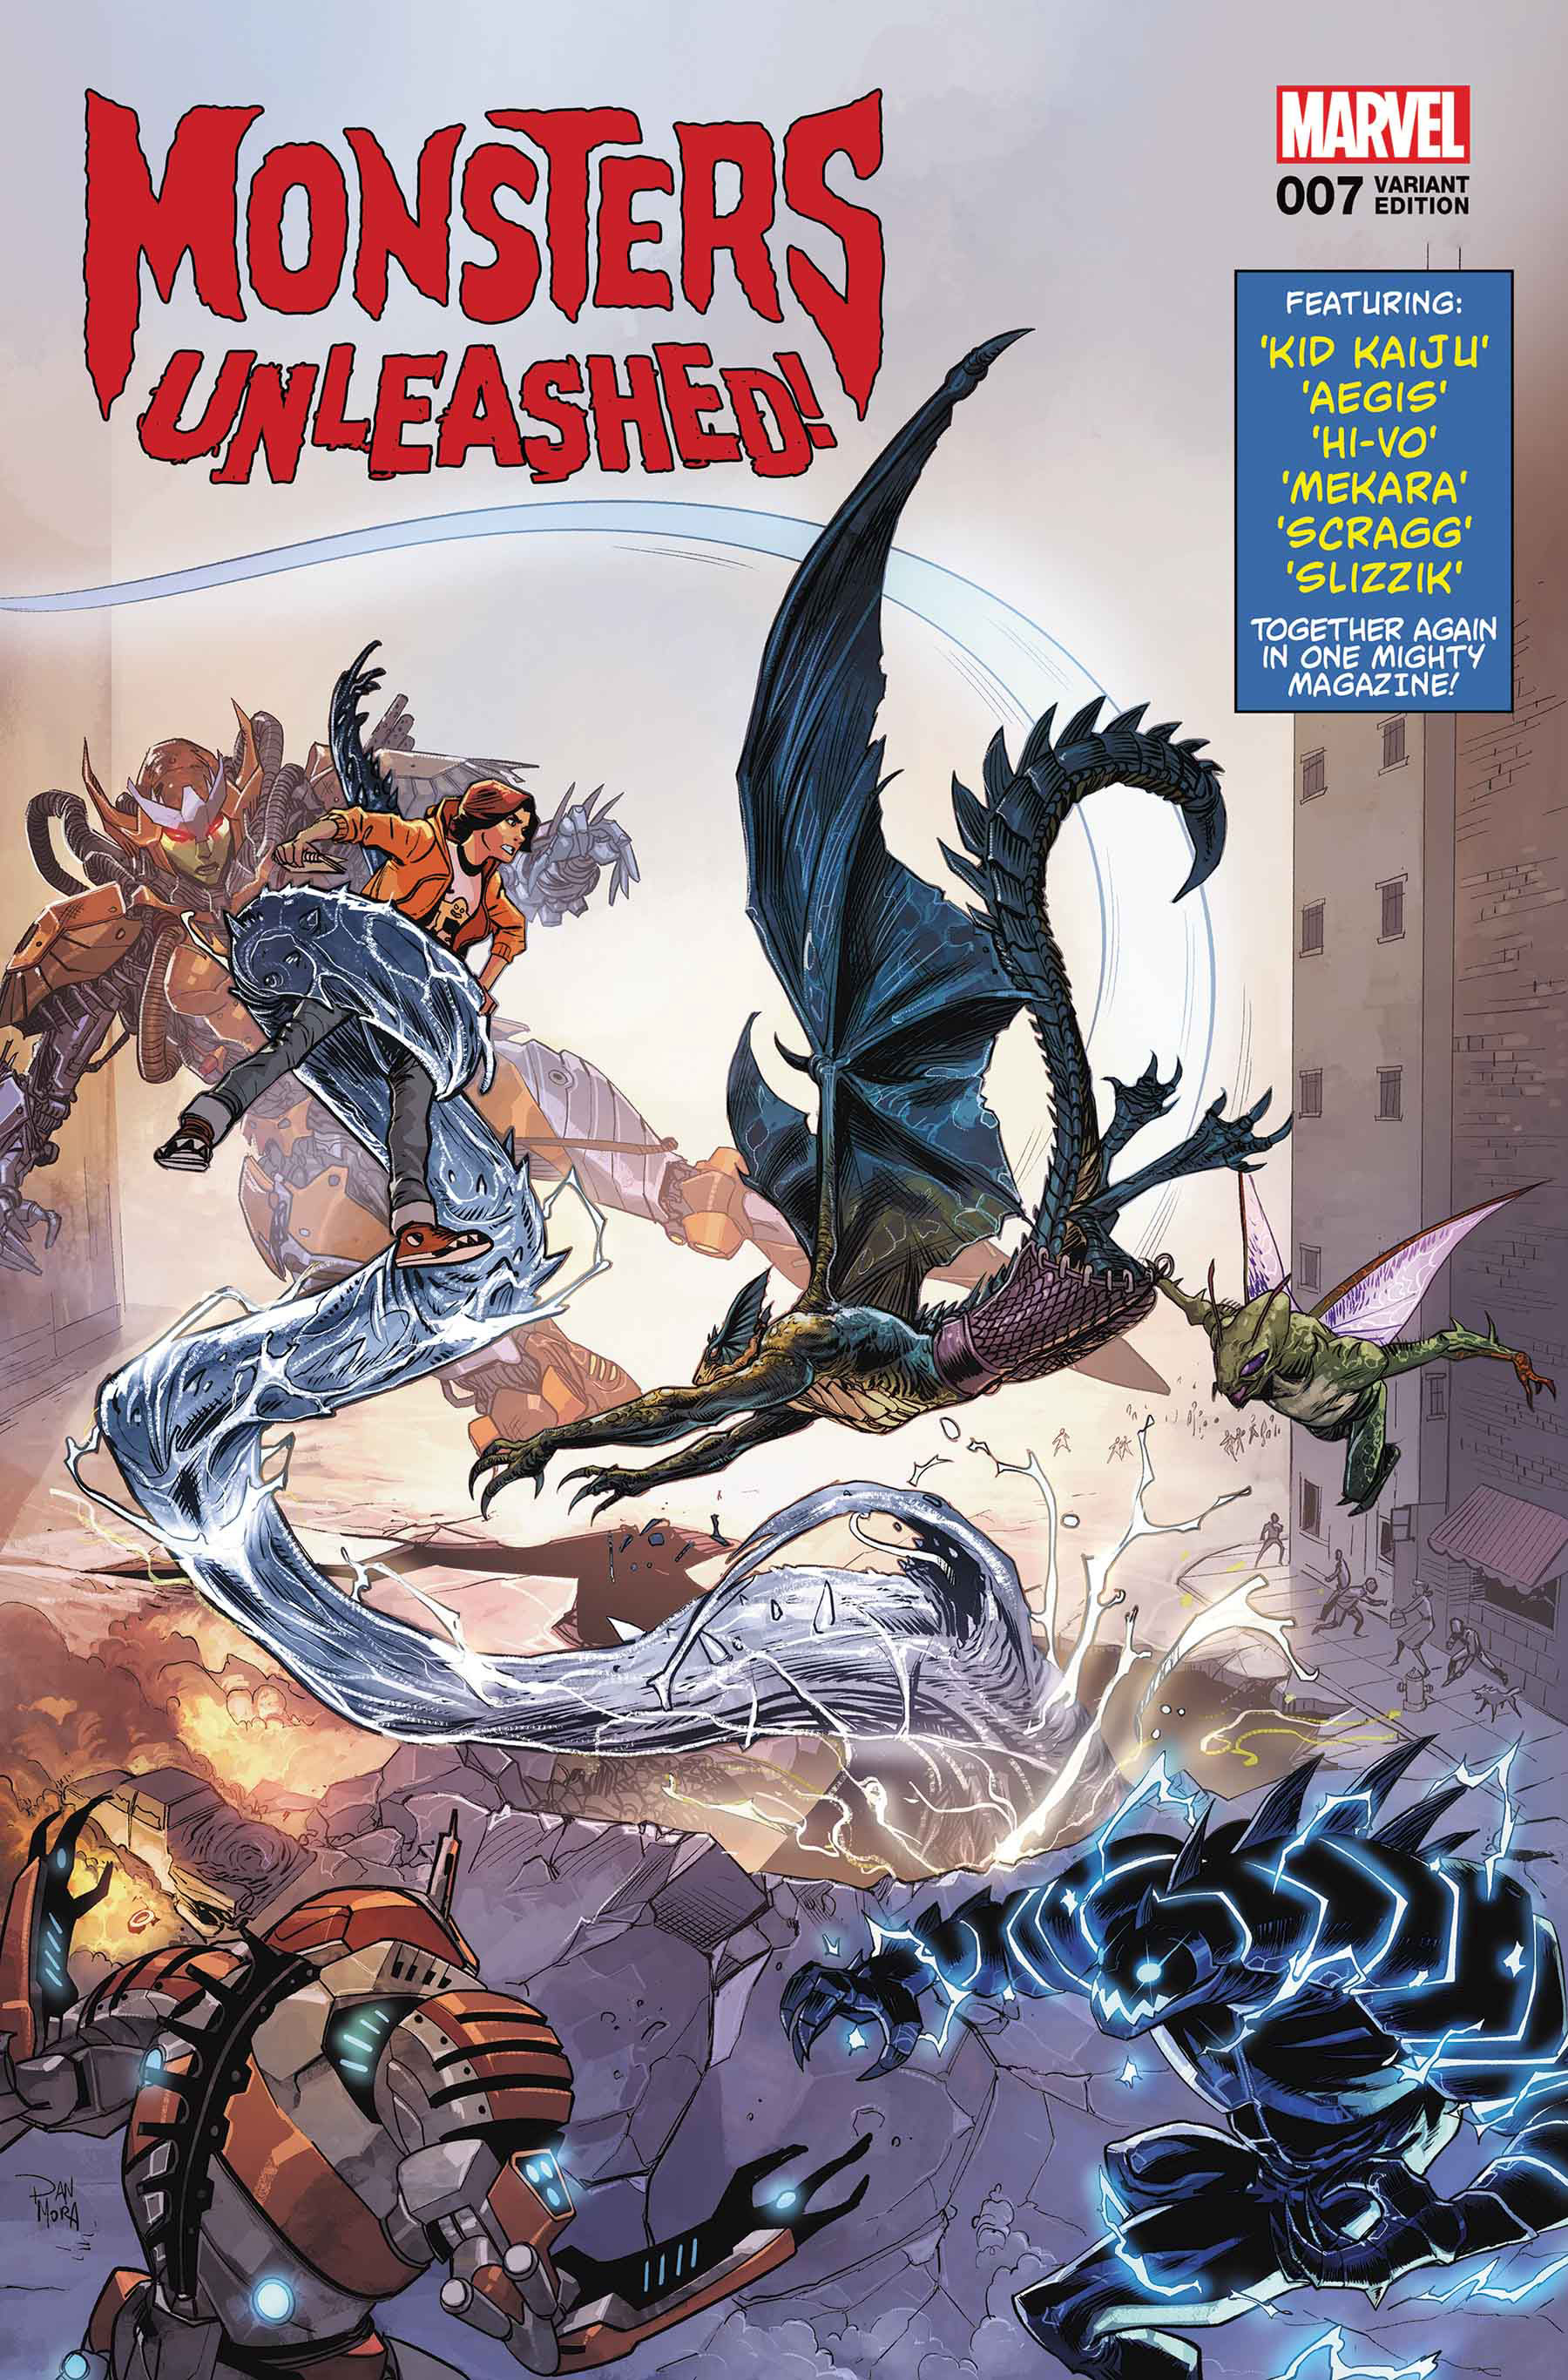 MONSTERS UNLEASHED #7 VARIANT